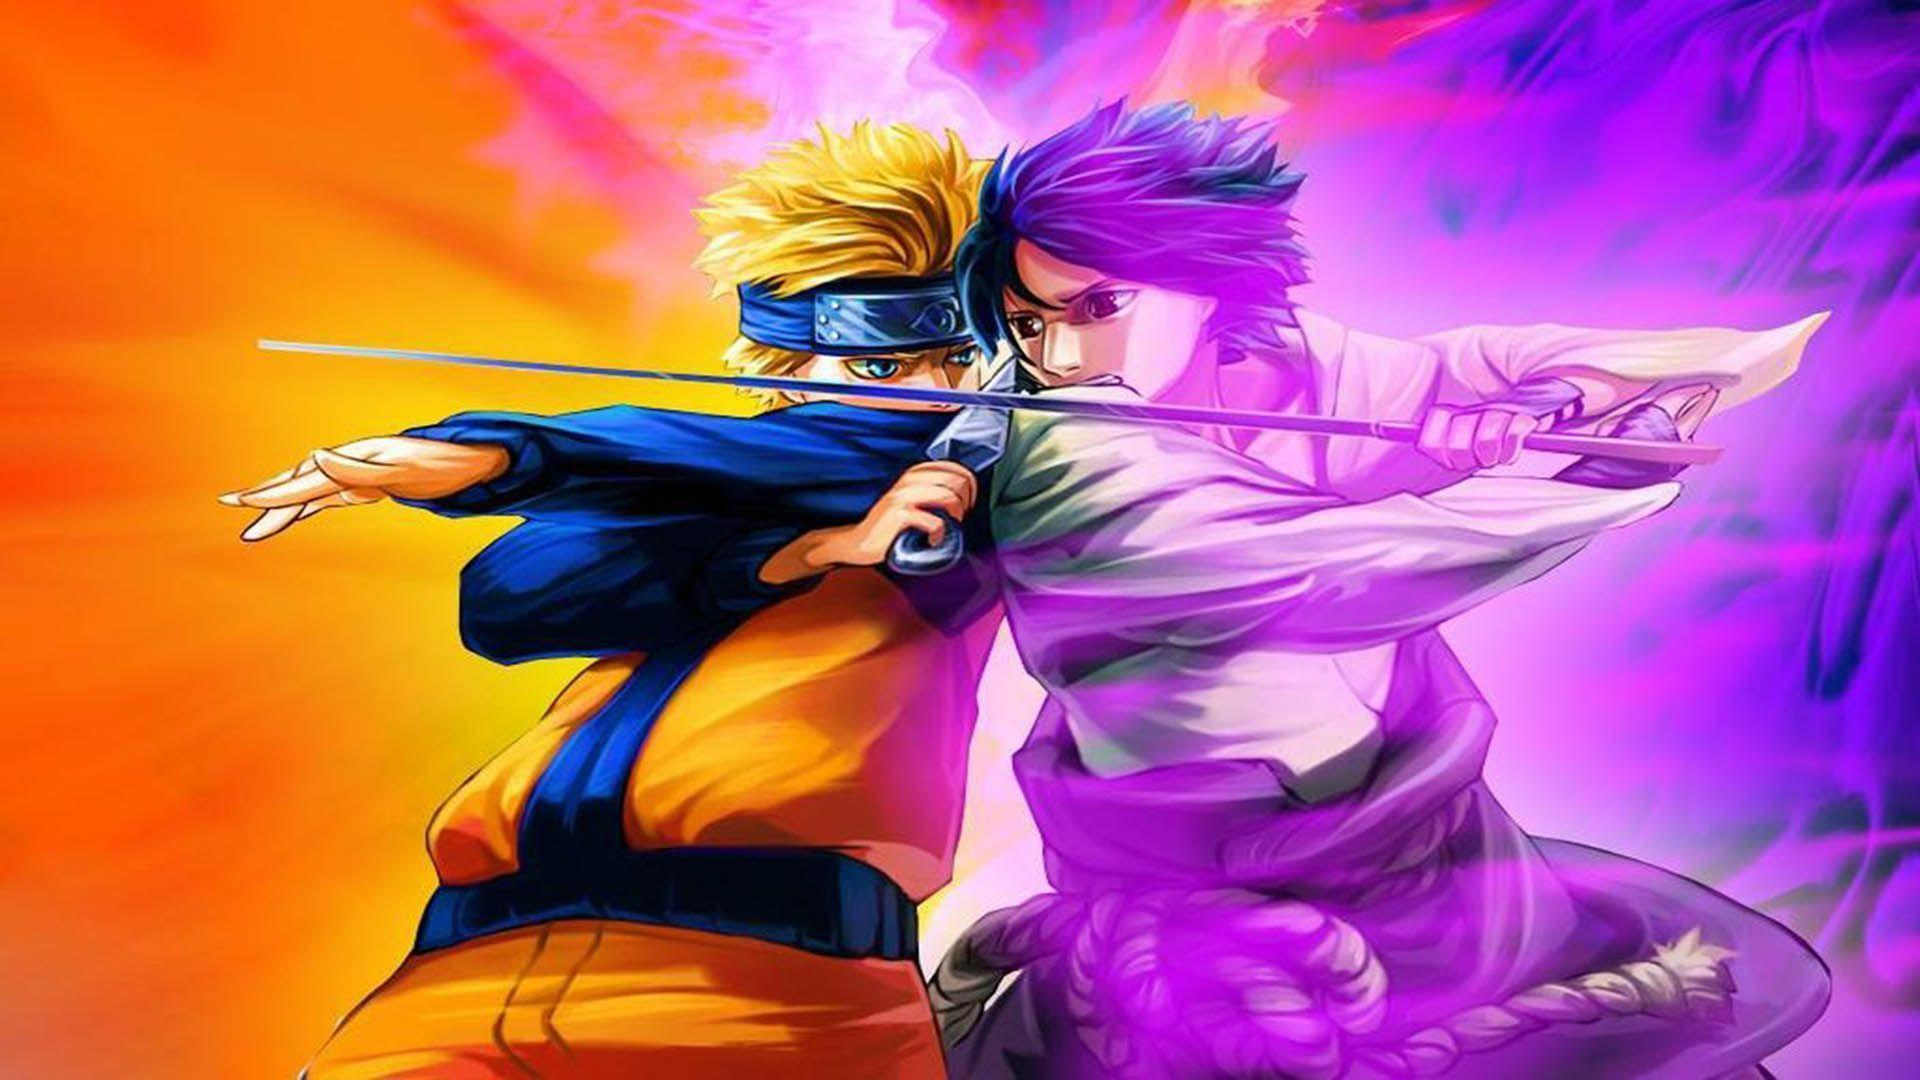 Naruto Vs Sasuke Wallpapers Hd